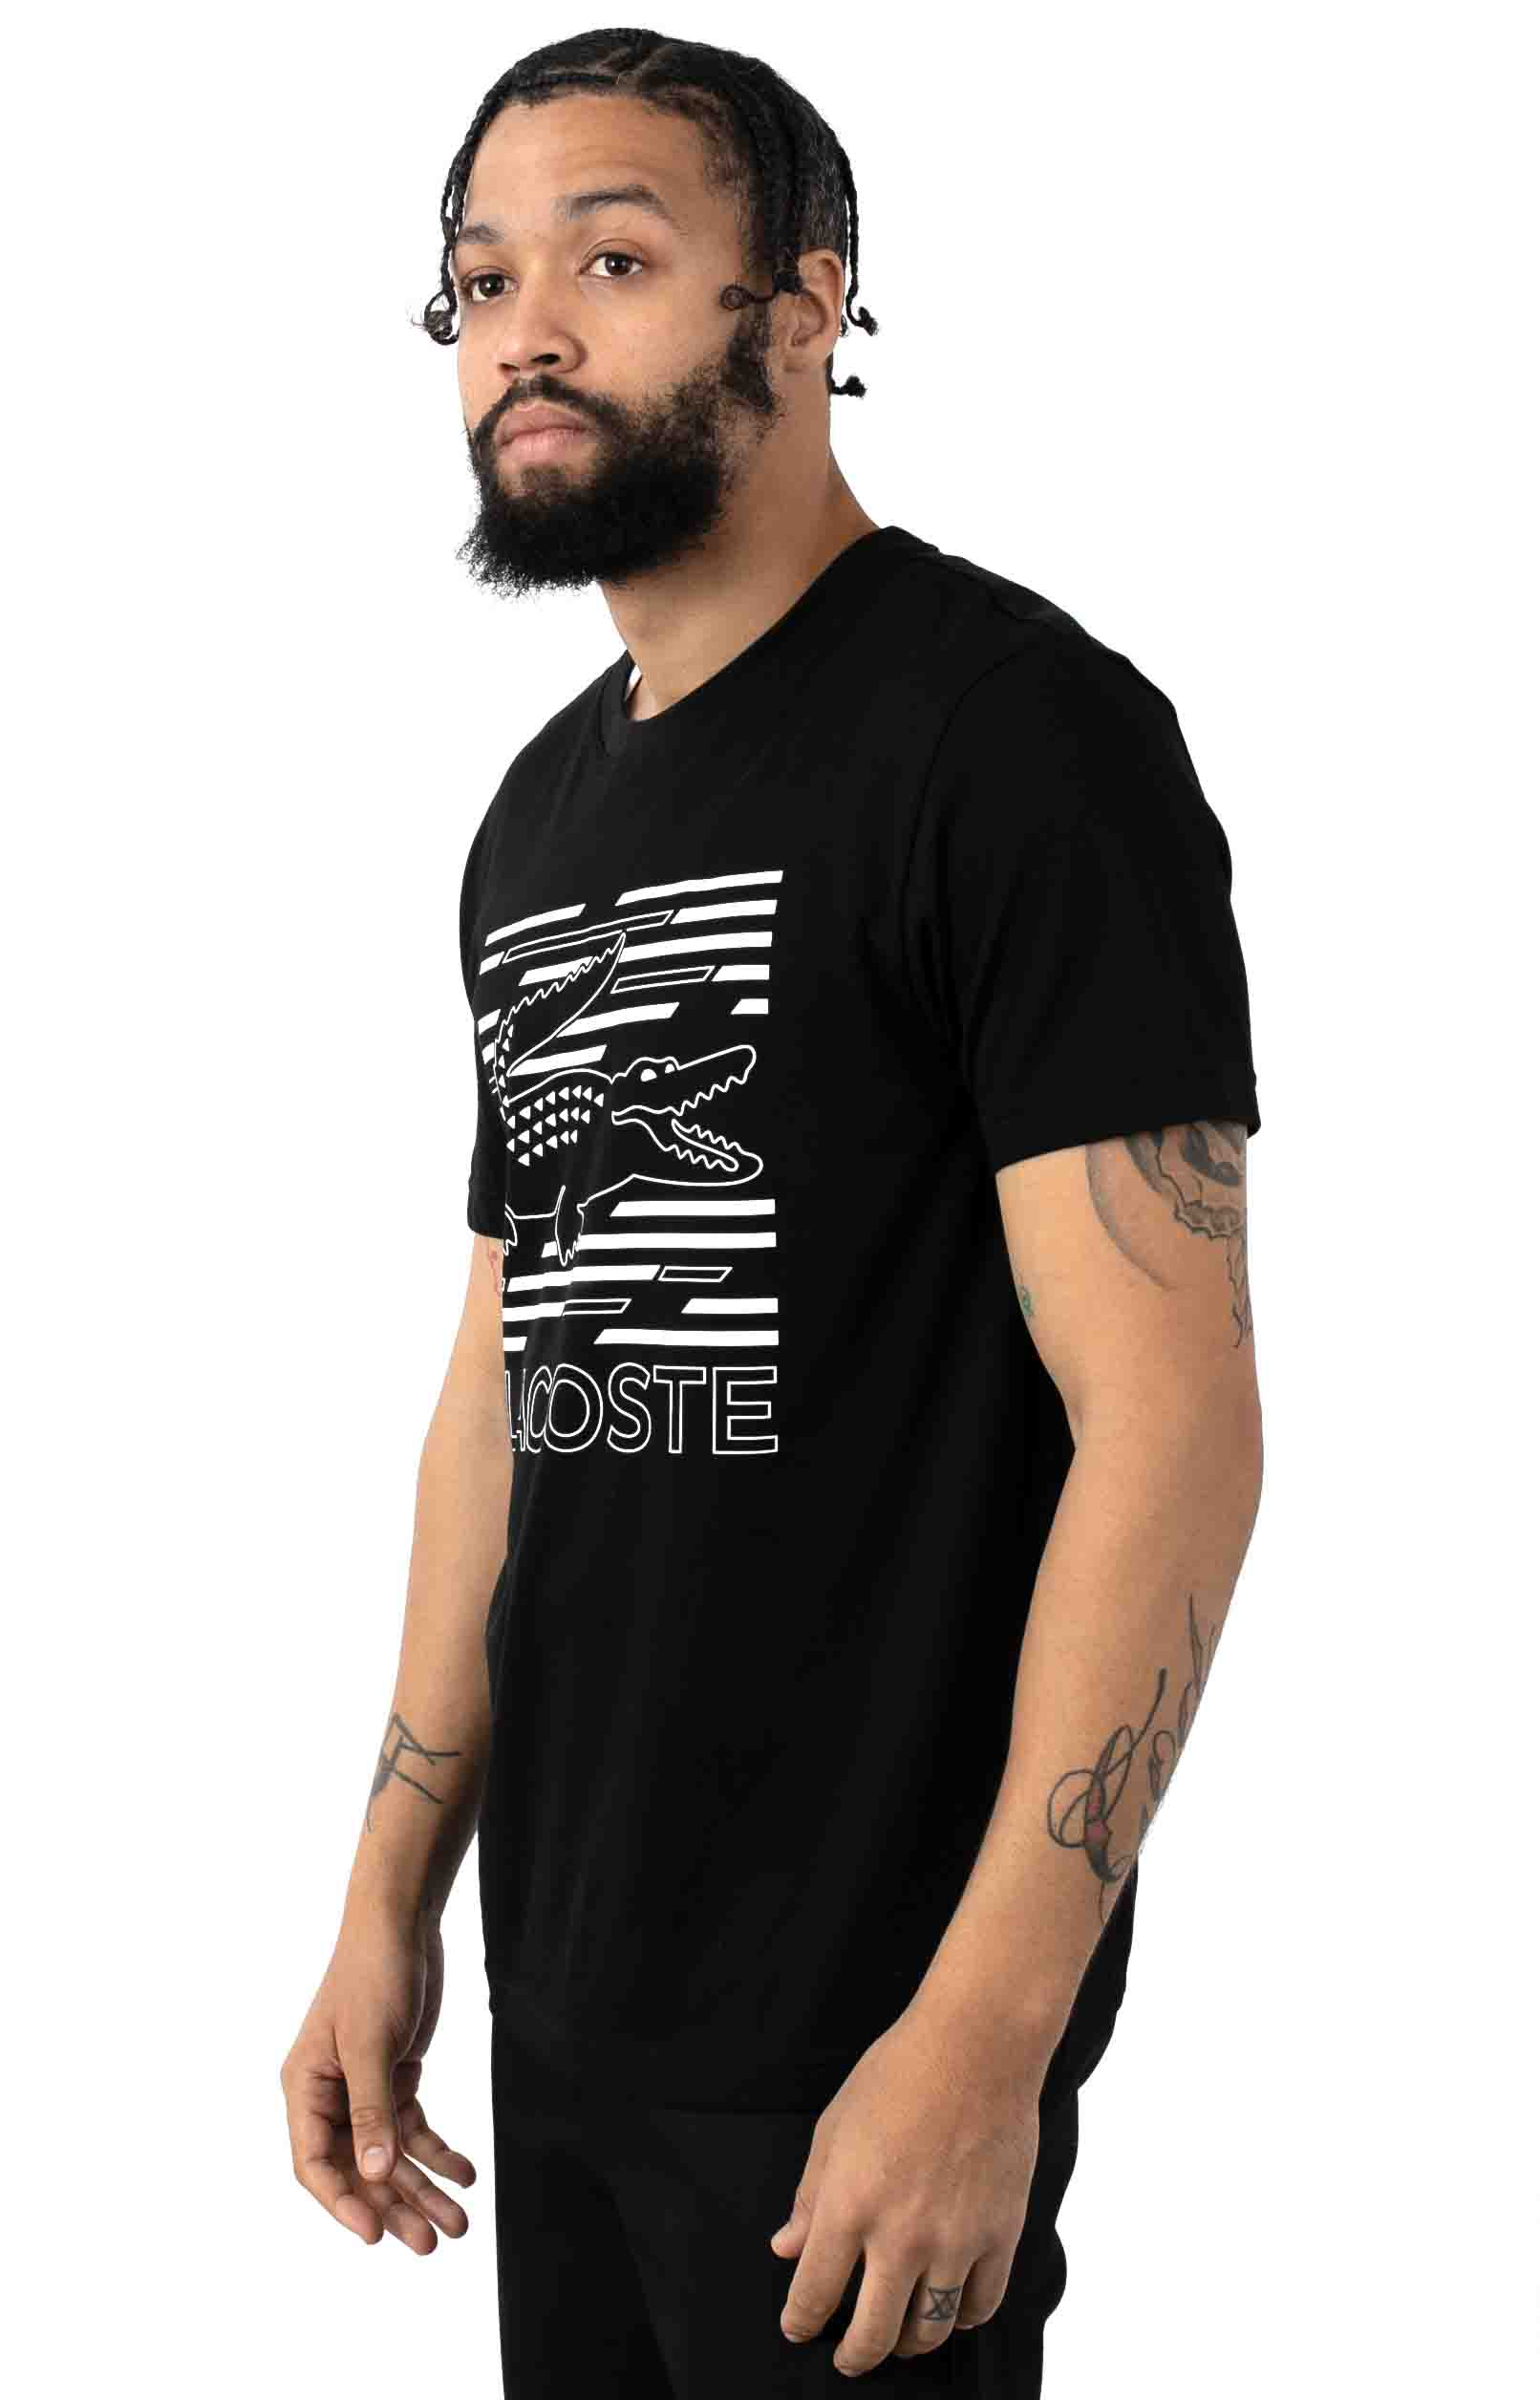 SPORT Ultra-Dry Graphic T-Shirt - Black 2